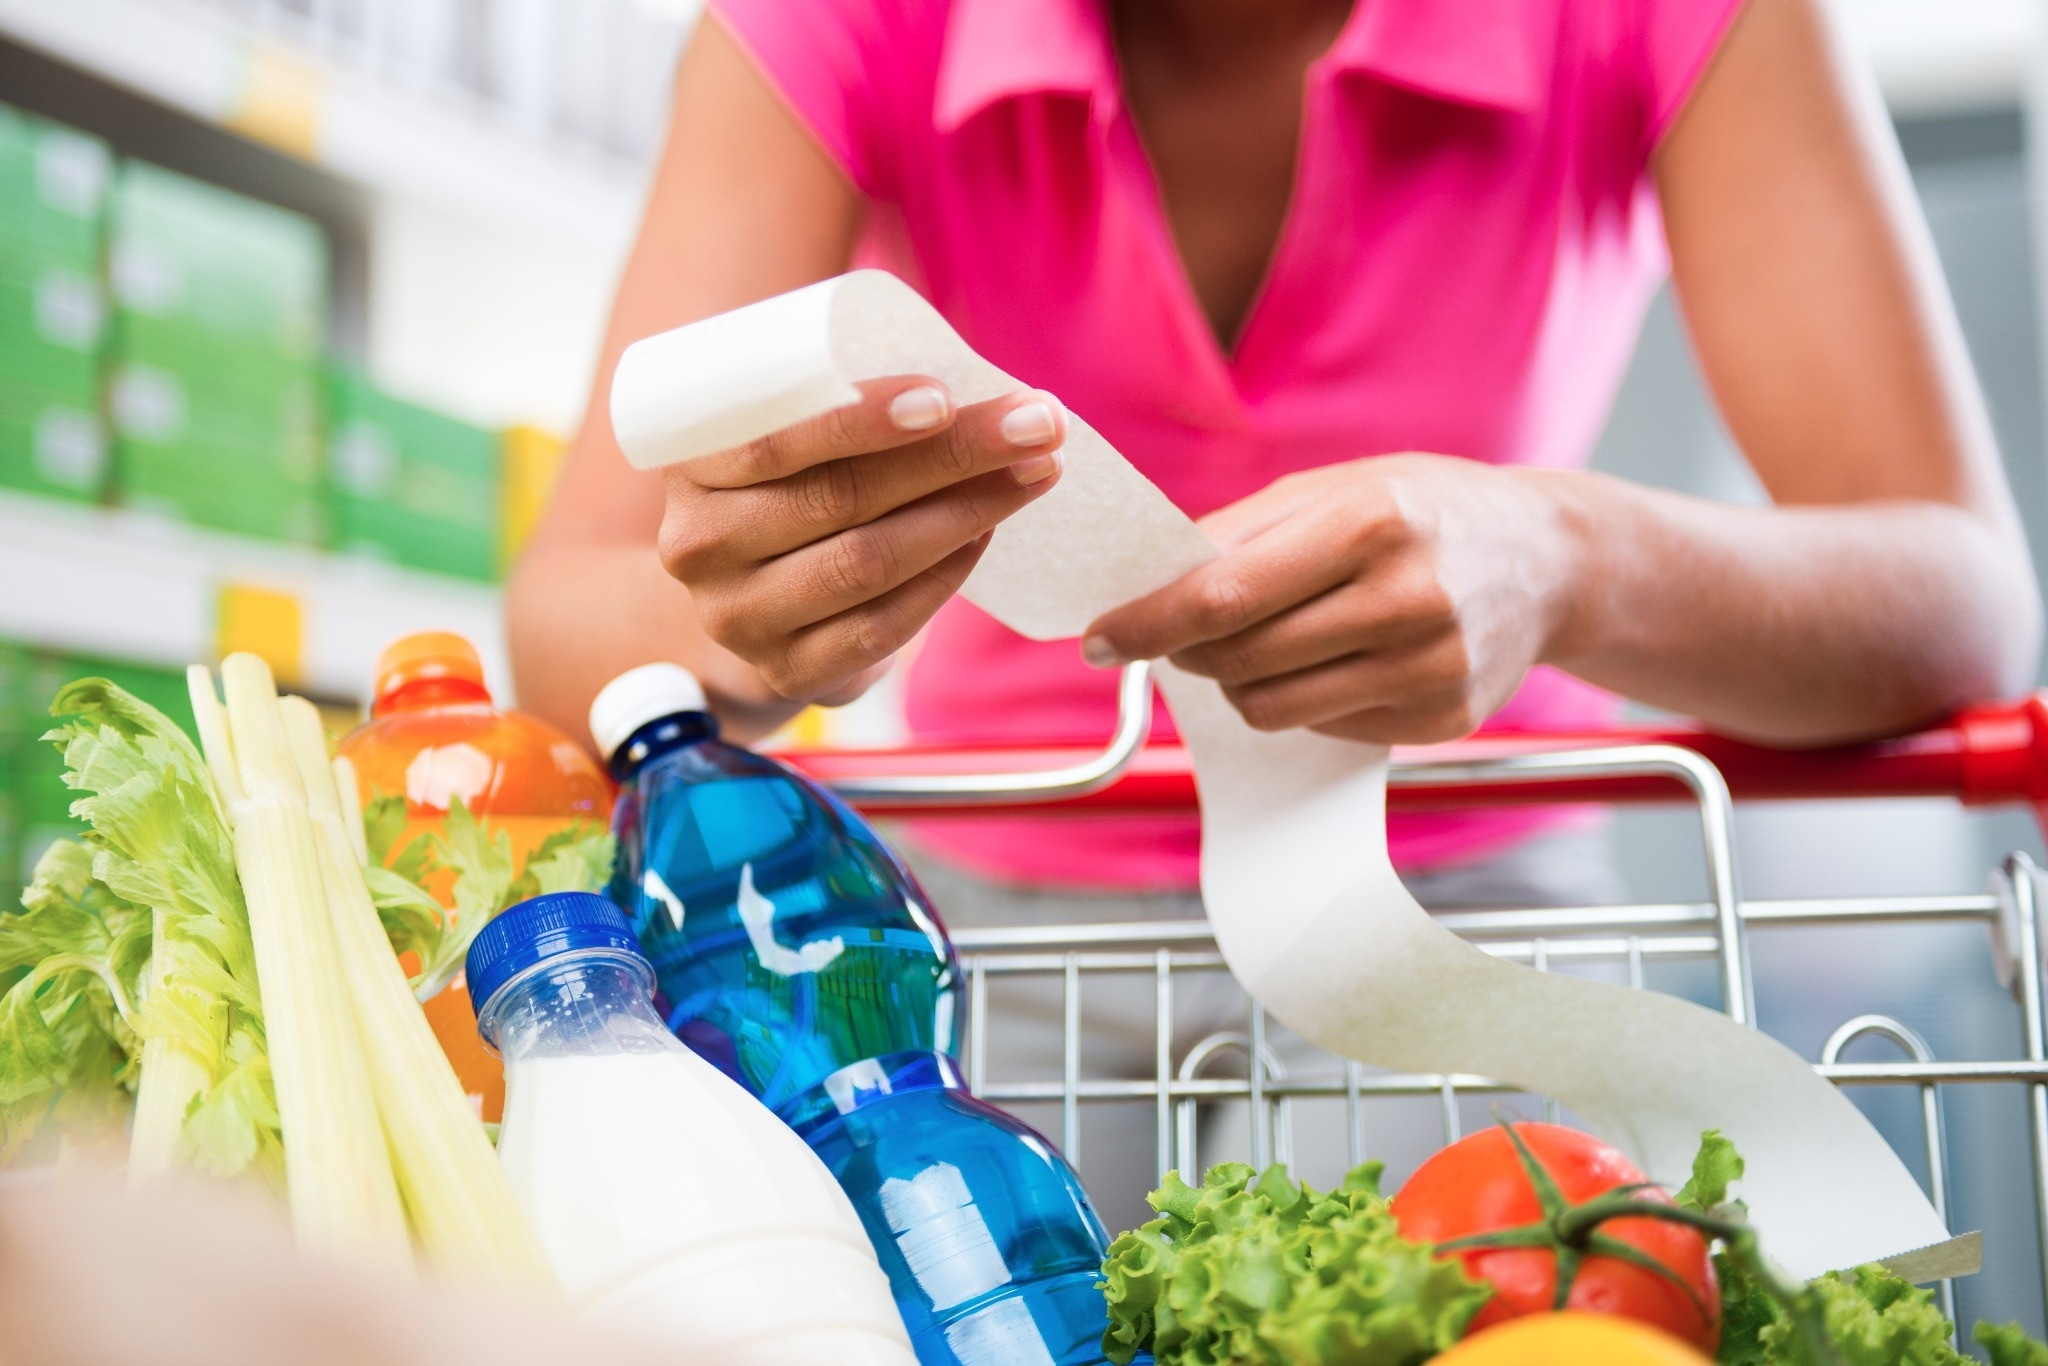 10 Easy Ways to Save Money at the Grocery Store